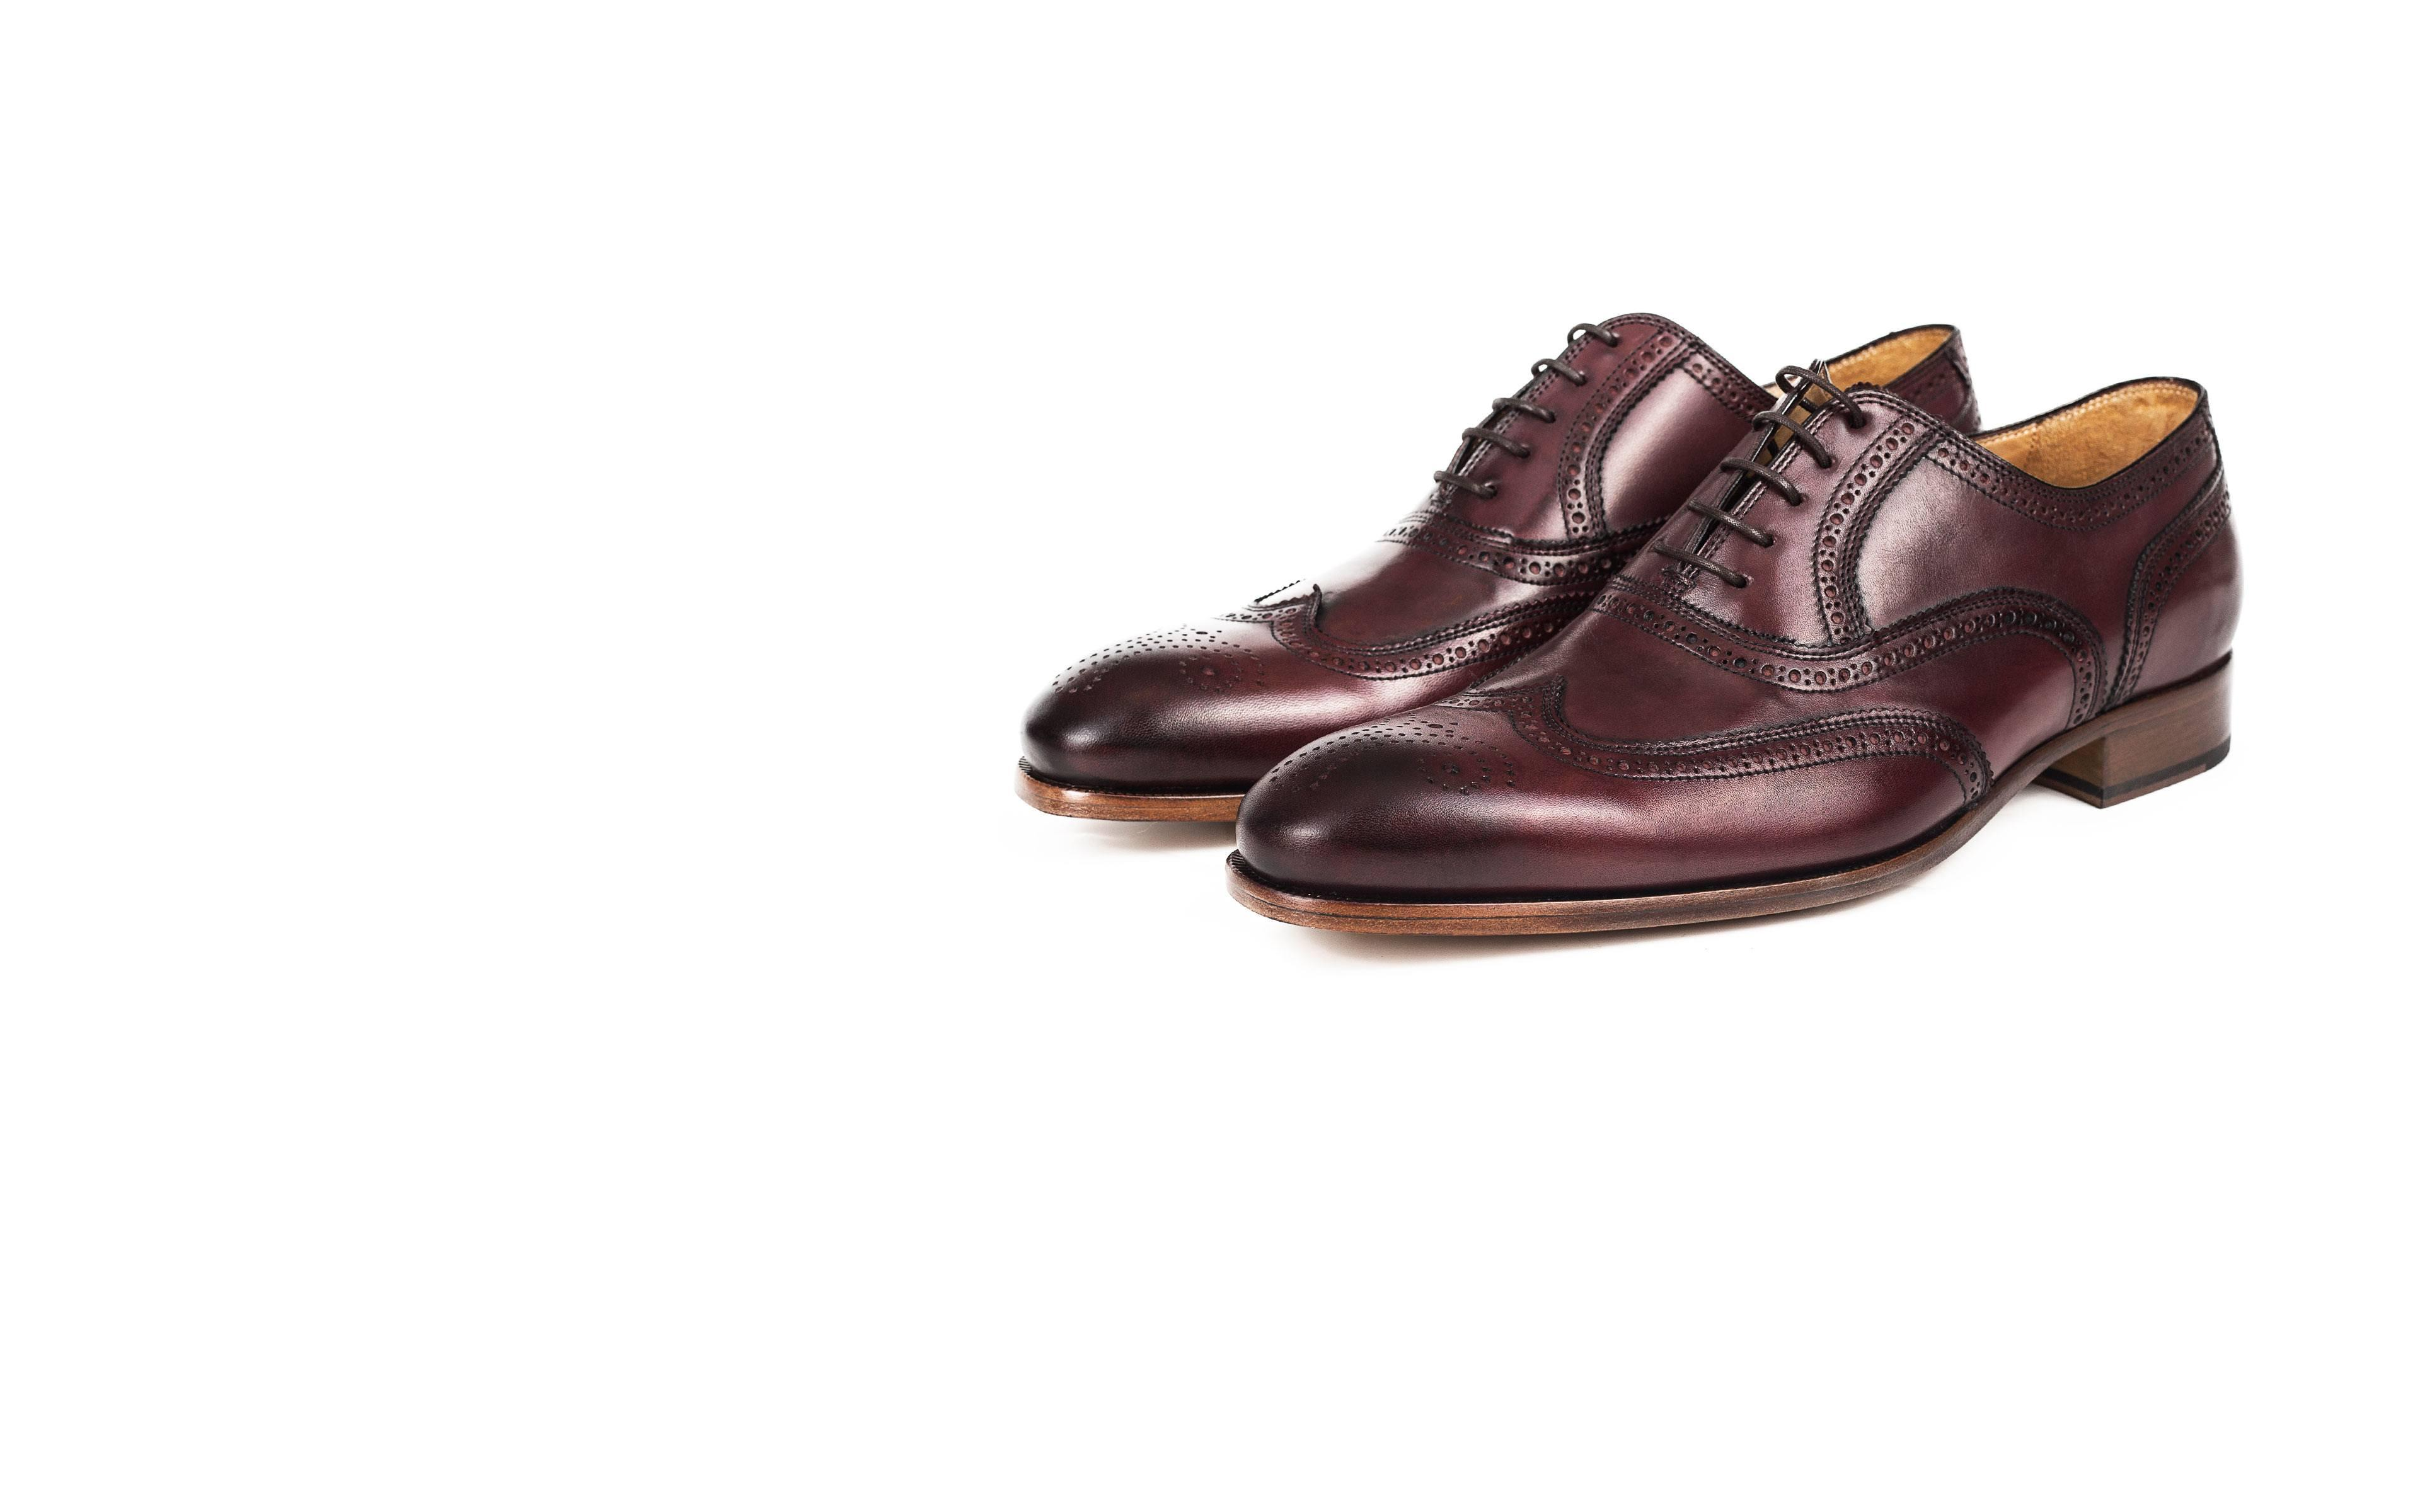 Burgundy Wingtip Oxford